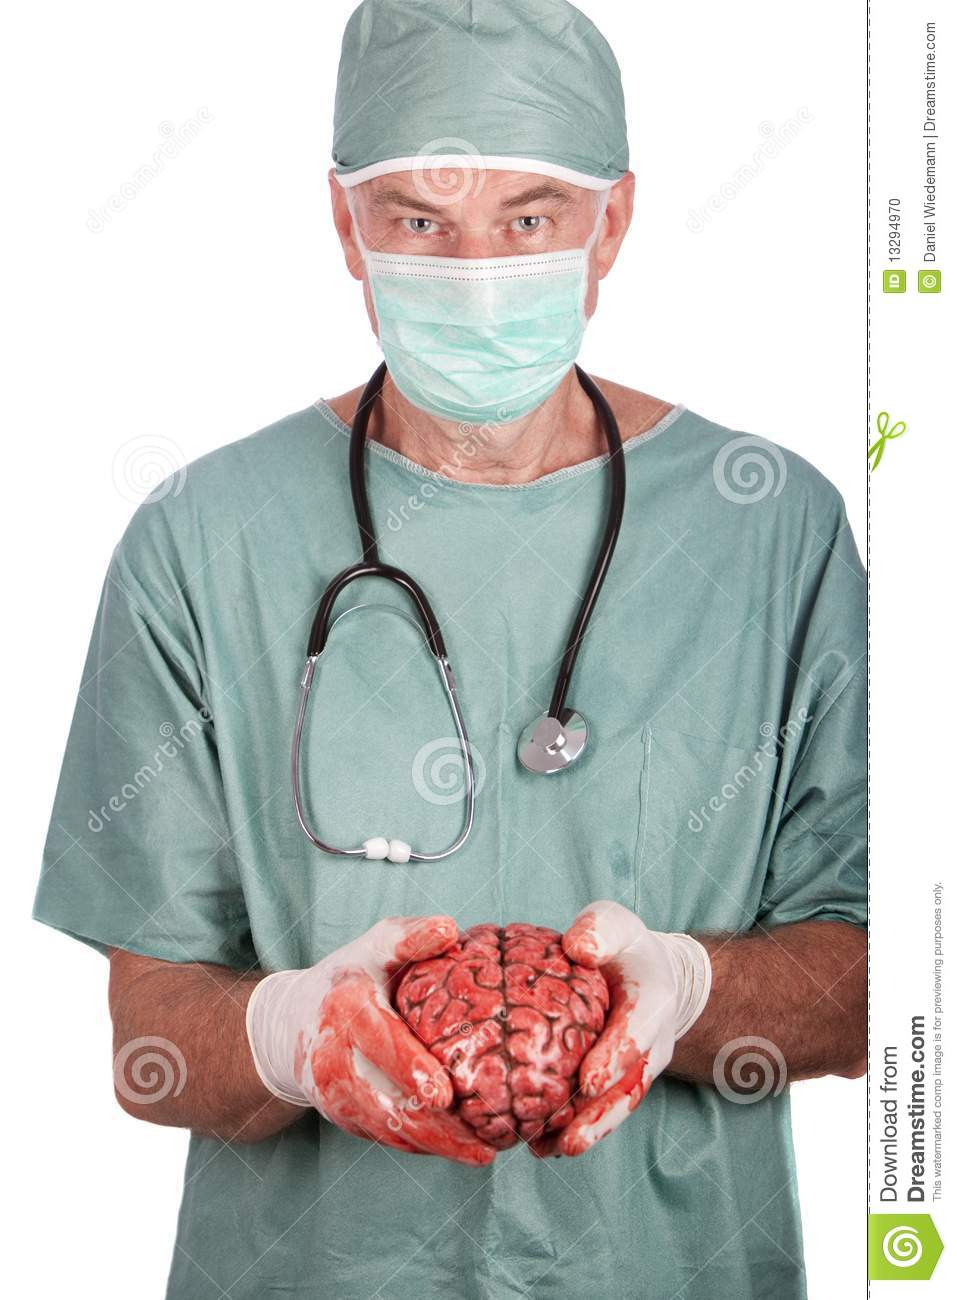 how to become a brain surgeon